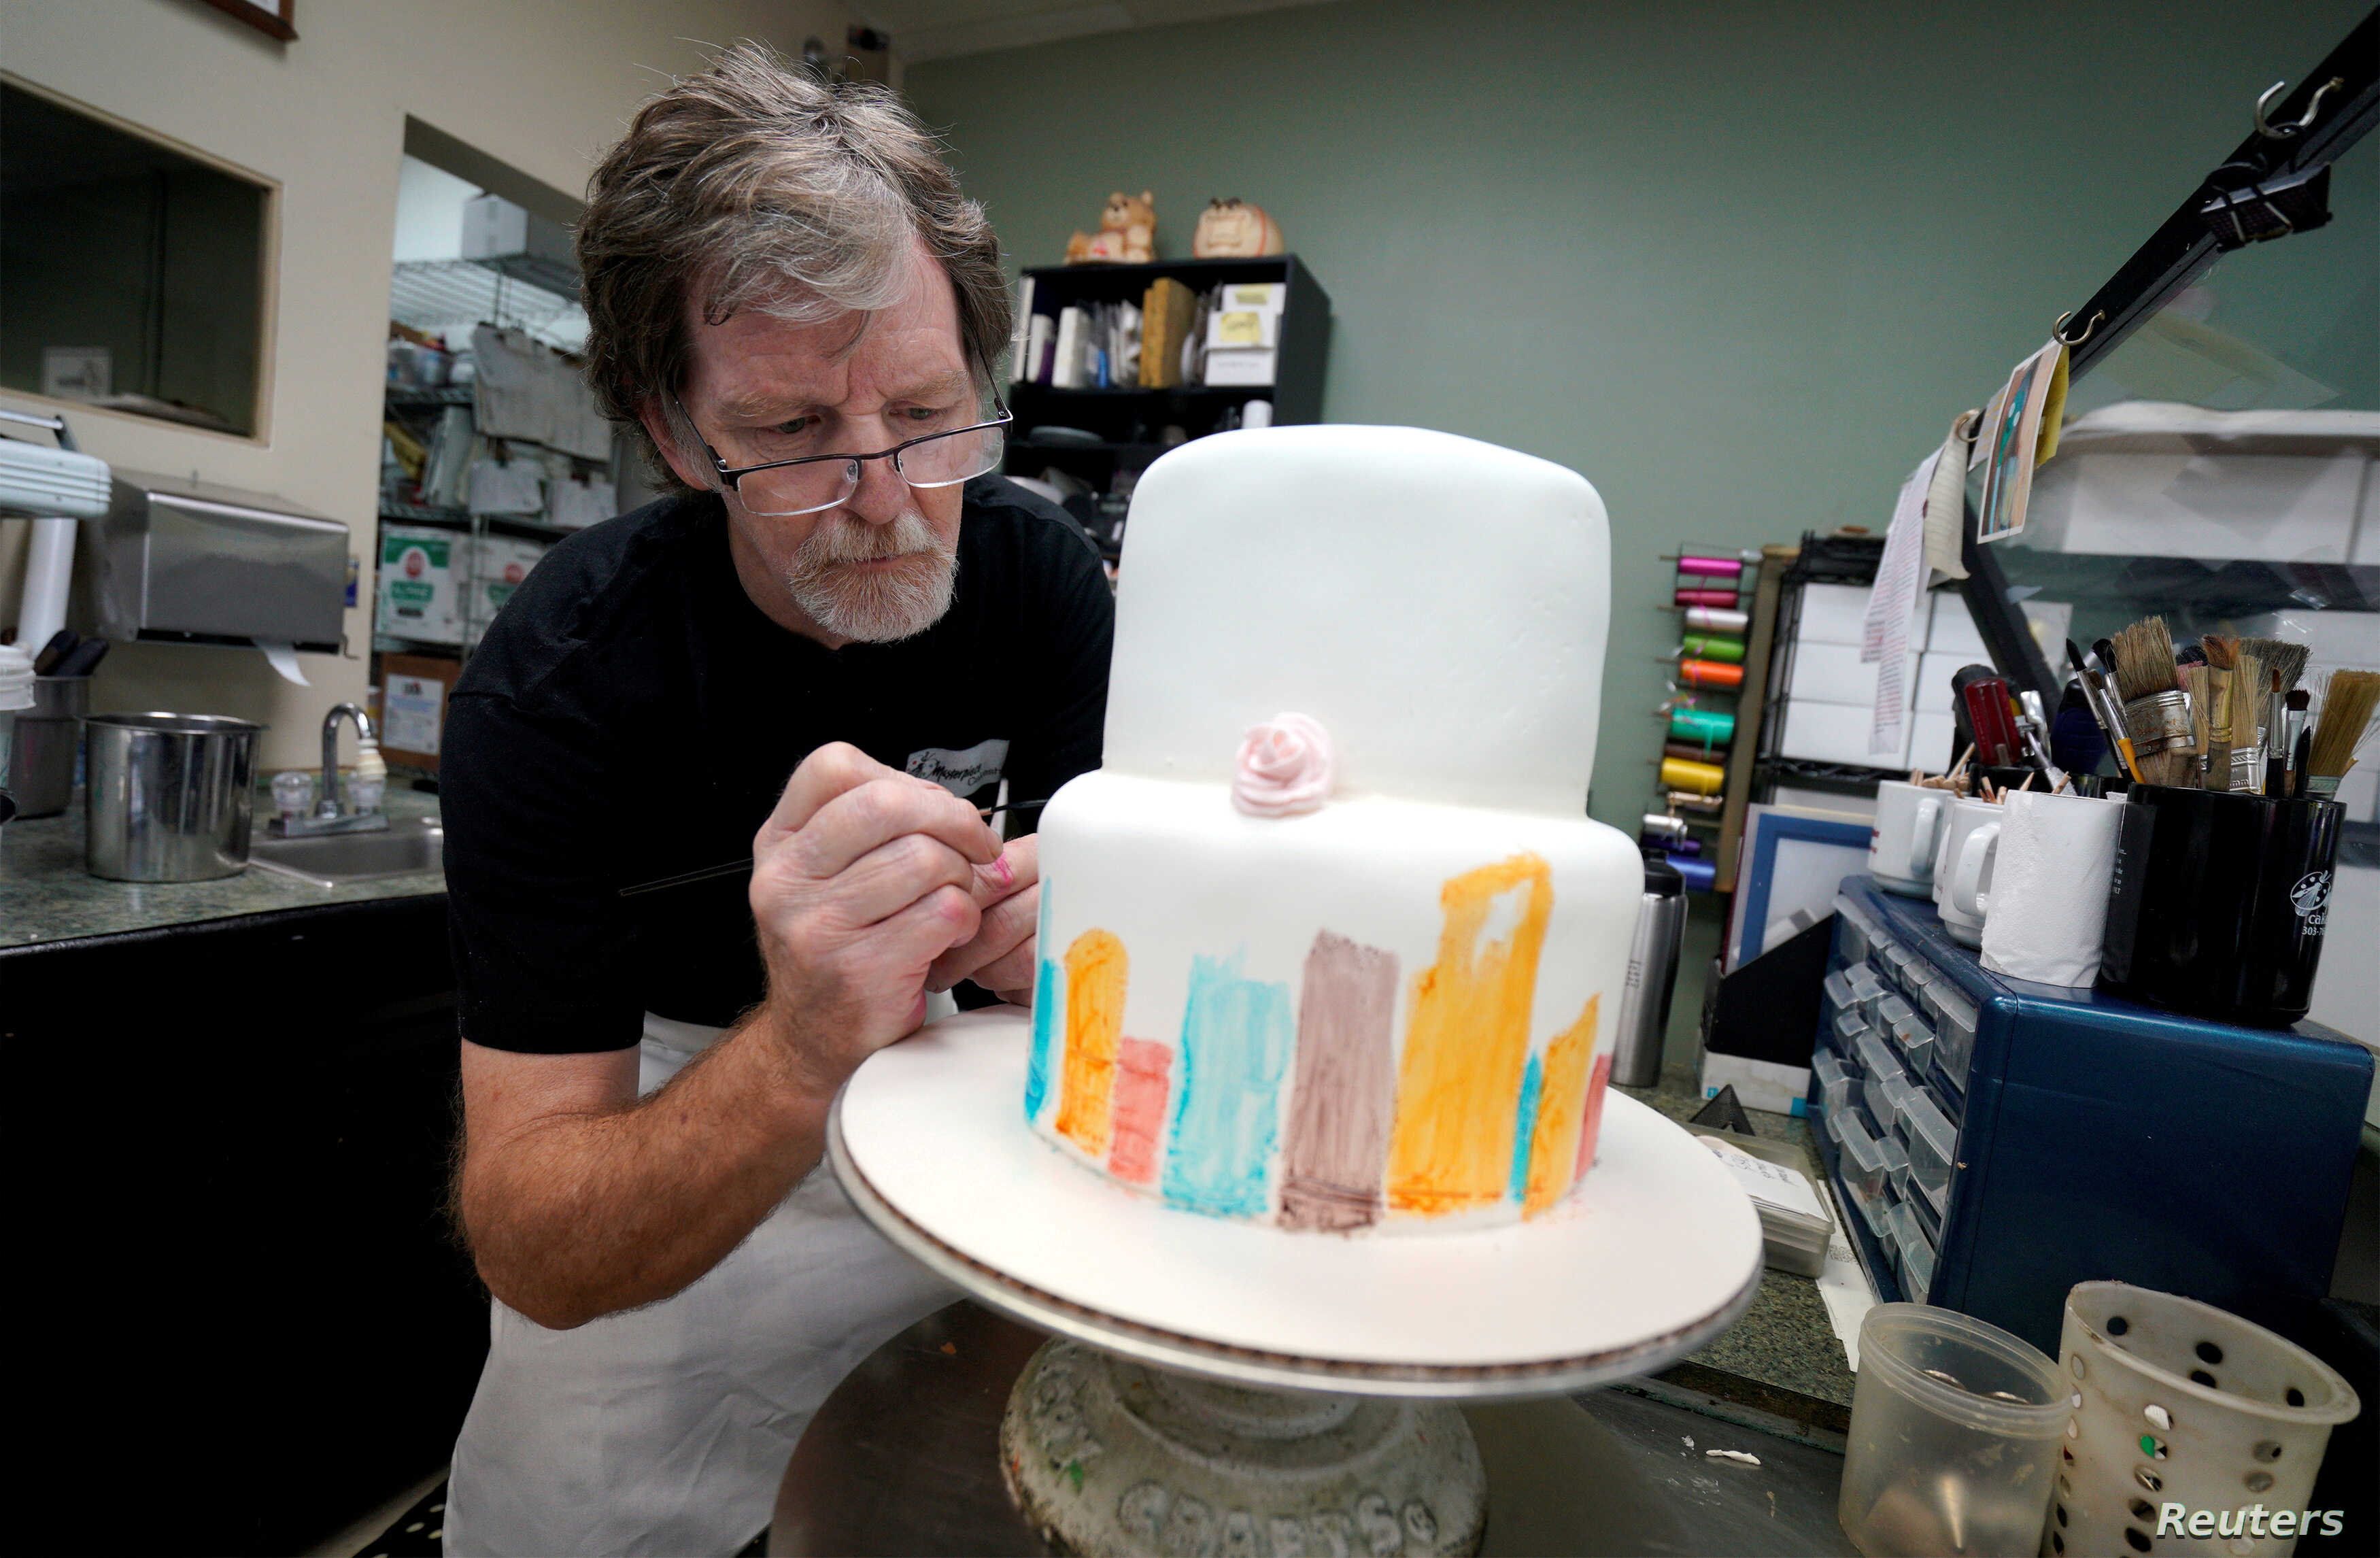 Baker, Jack Phillips, decorates a cake in his Masterpiece Cakeshop in Lakewood, Colorado, Sept. 21, 2017.